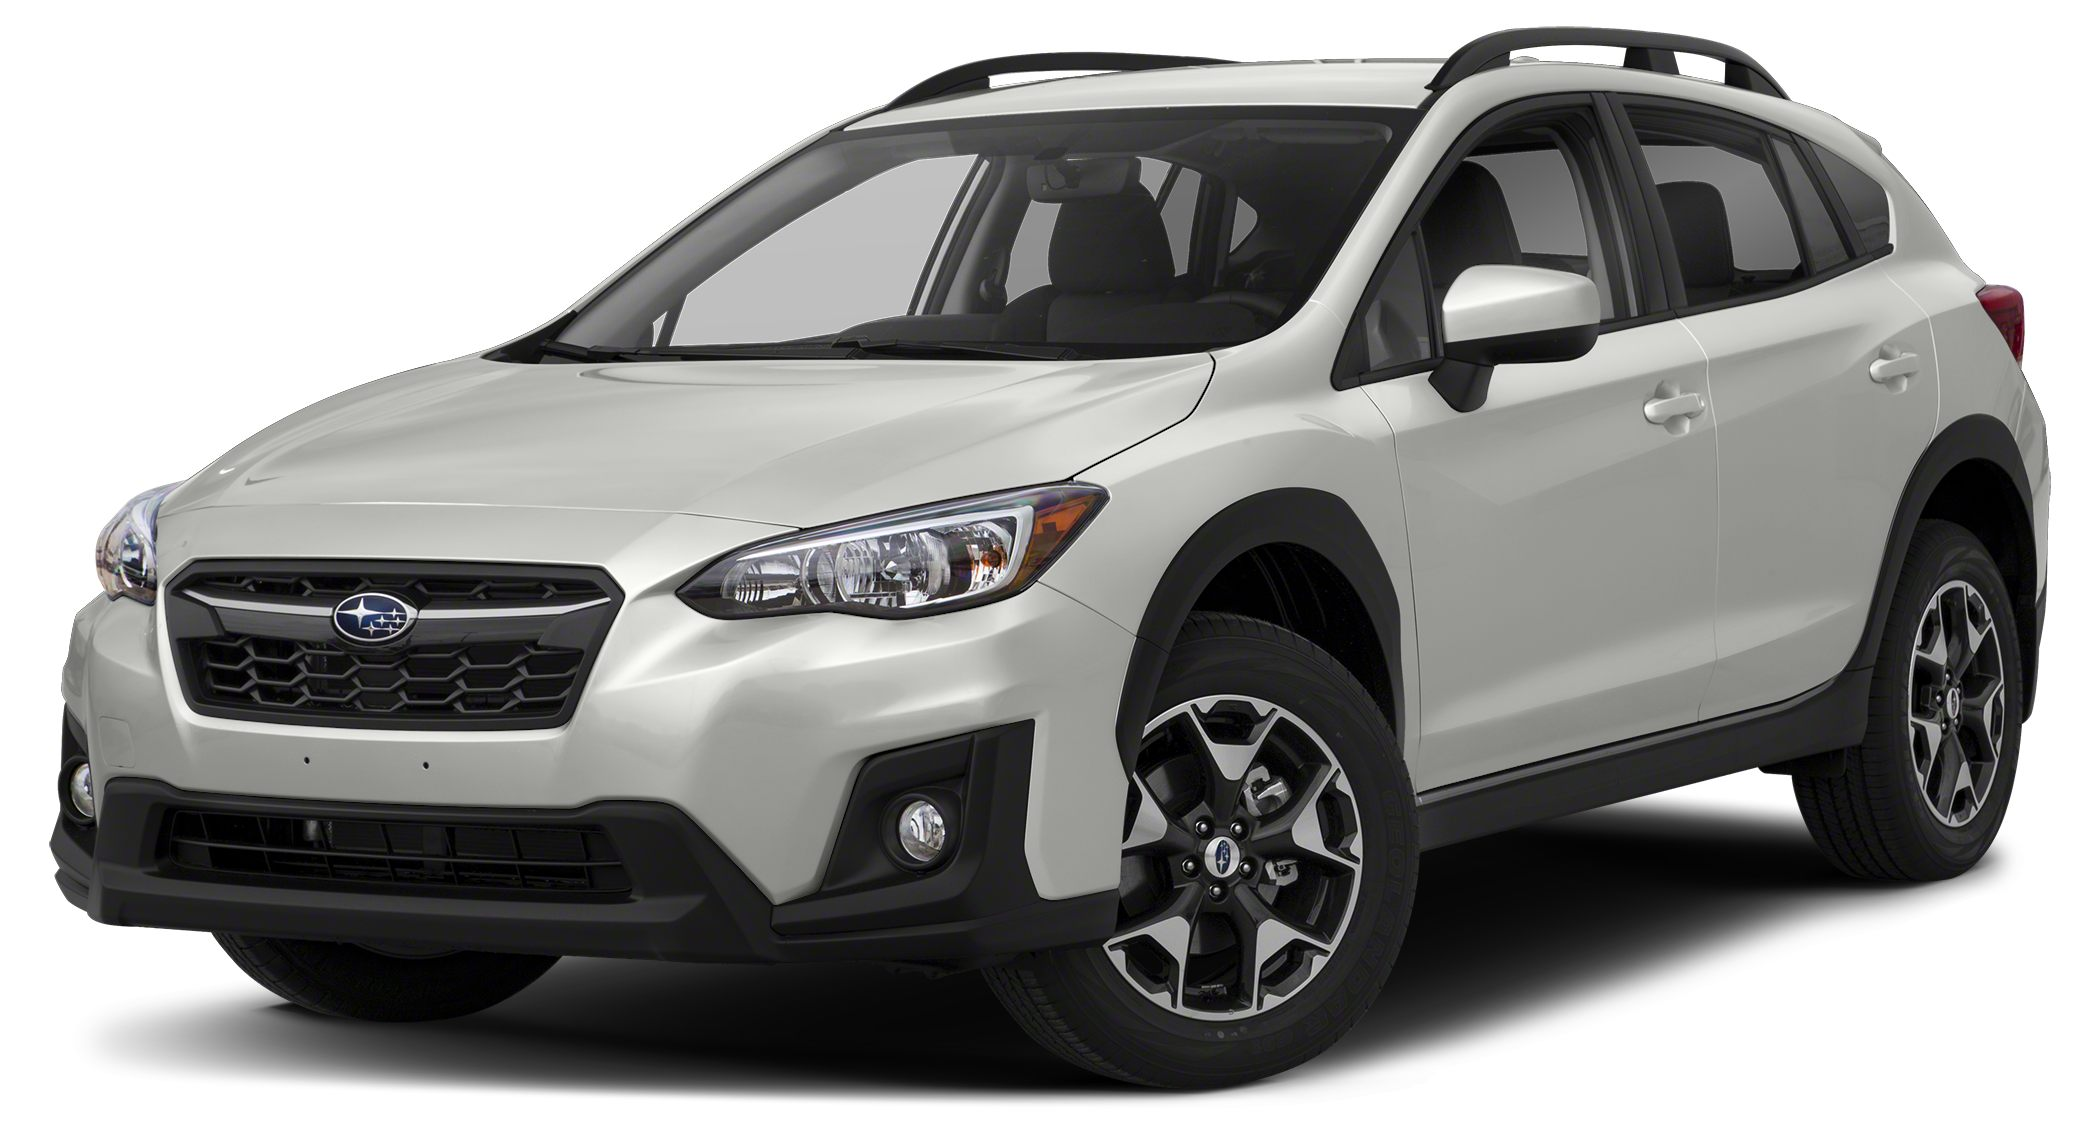 2018 Subaru Crosstrek 20i Premium 3327 HighwayCity MPG Miles 5296Color Crystal White Pearl